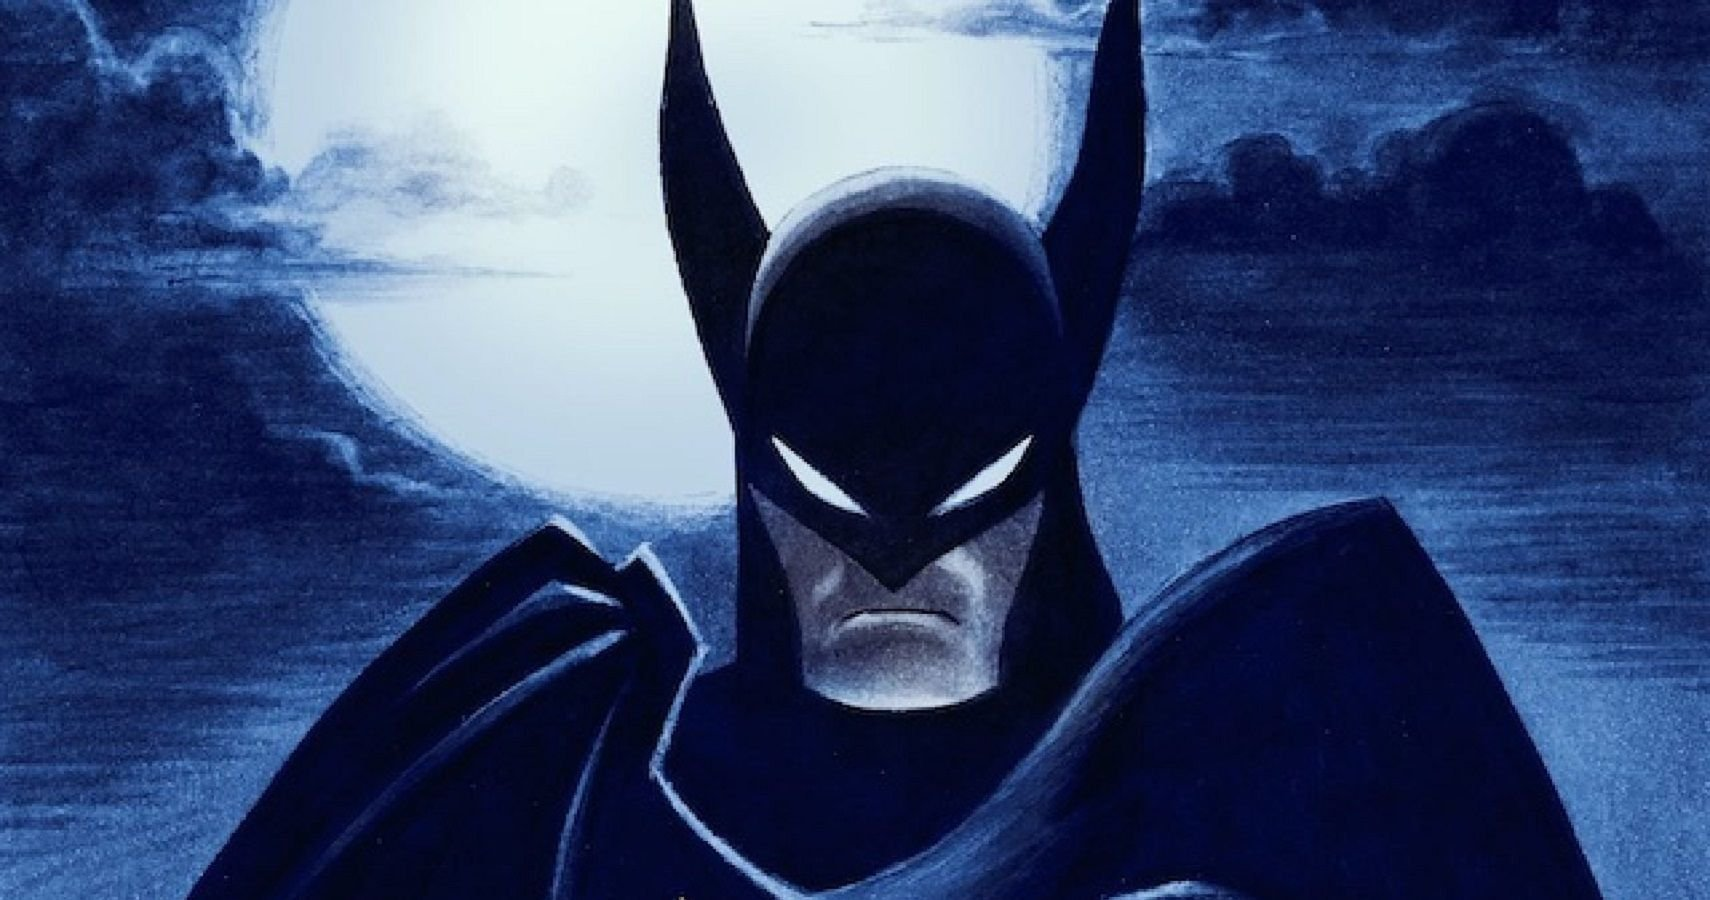 Batman: Caped Crusader Could Be The Best Superhero Cartoon In A Generation